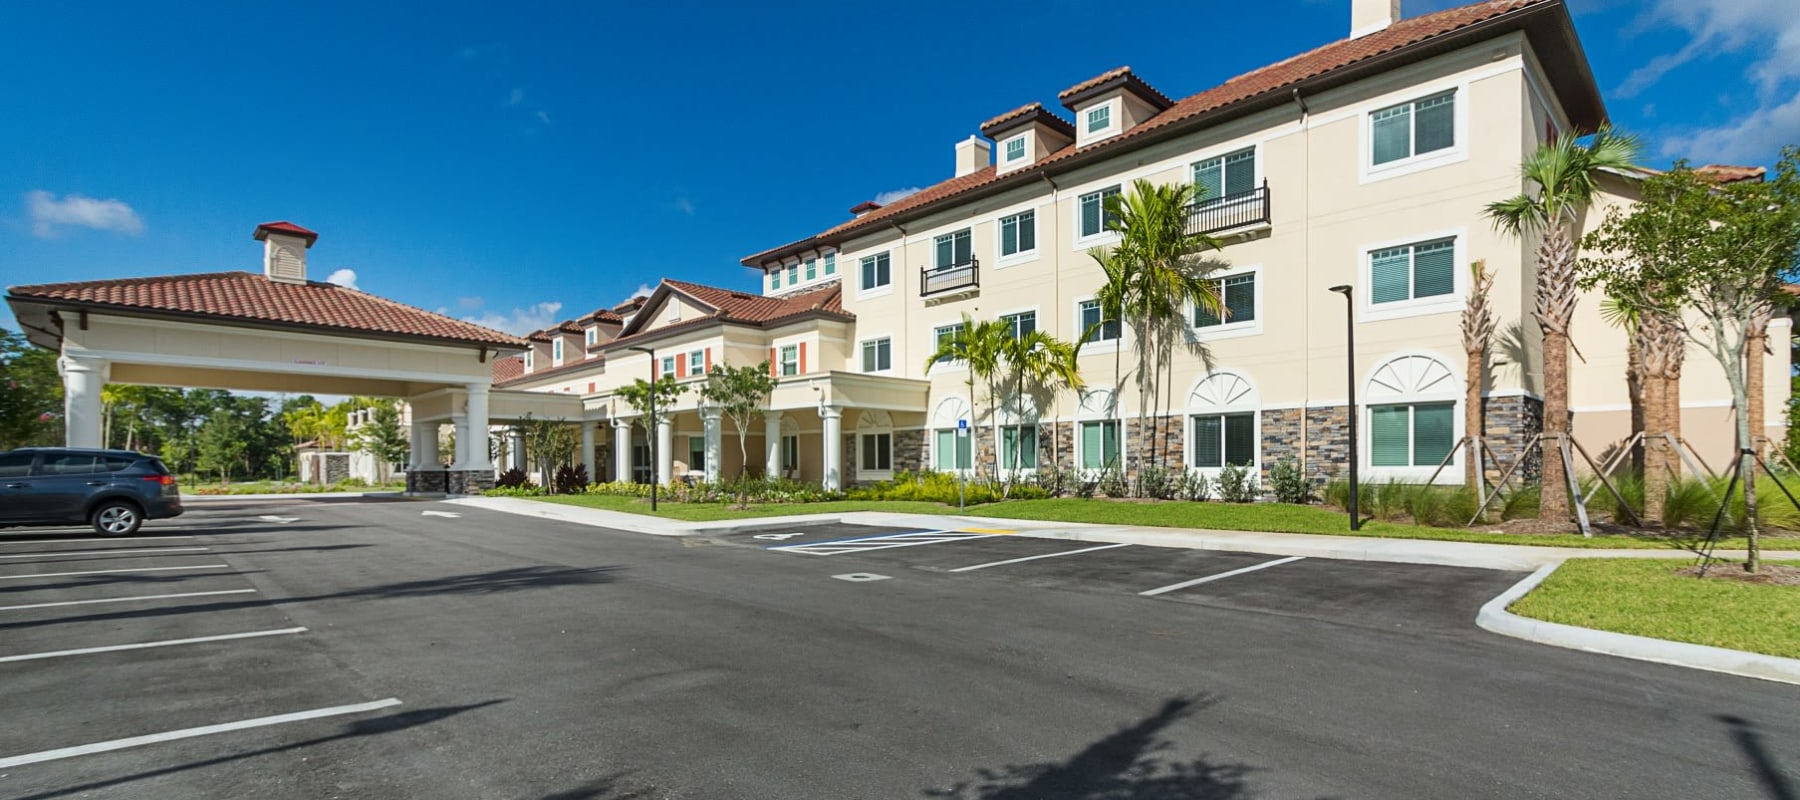 Senior living options at the senior living community in Palm Beach Gardens